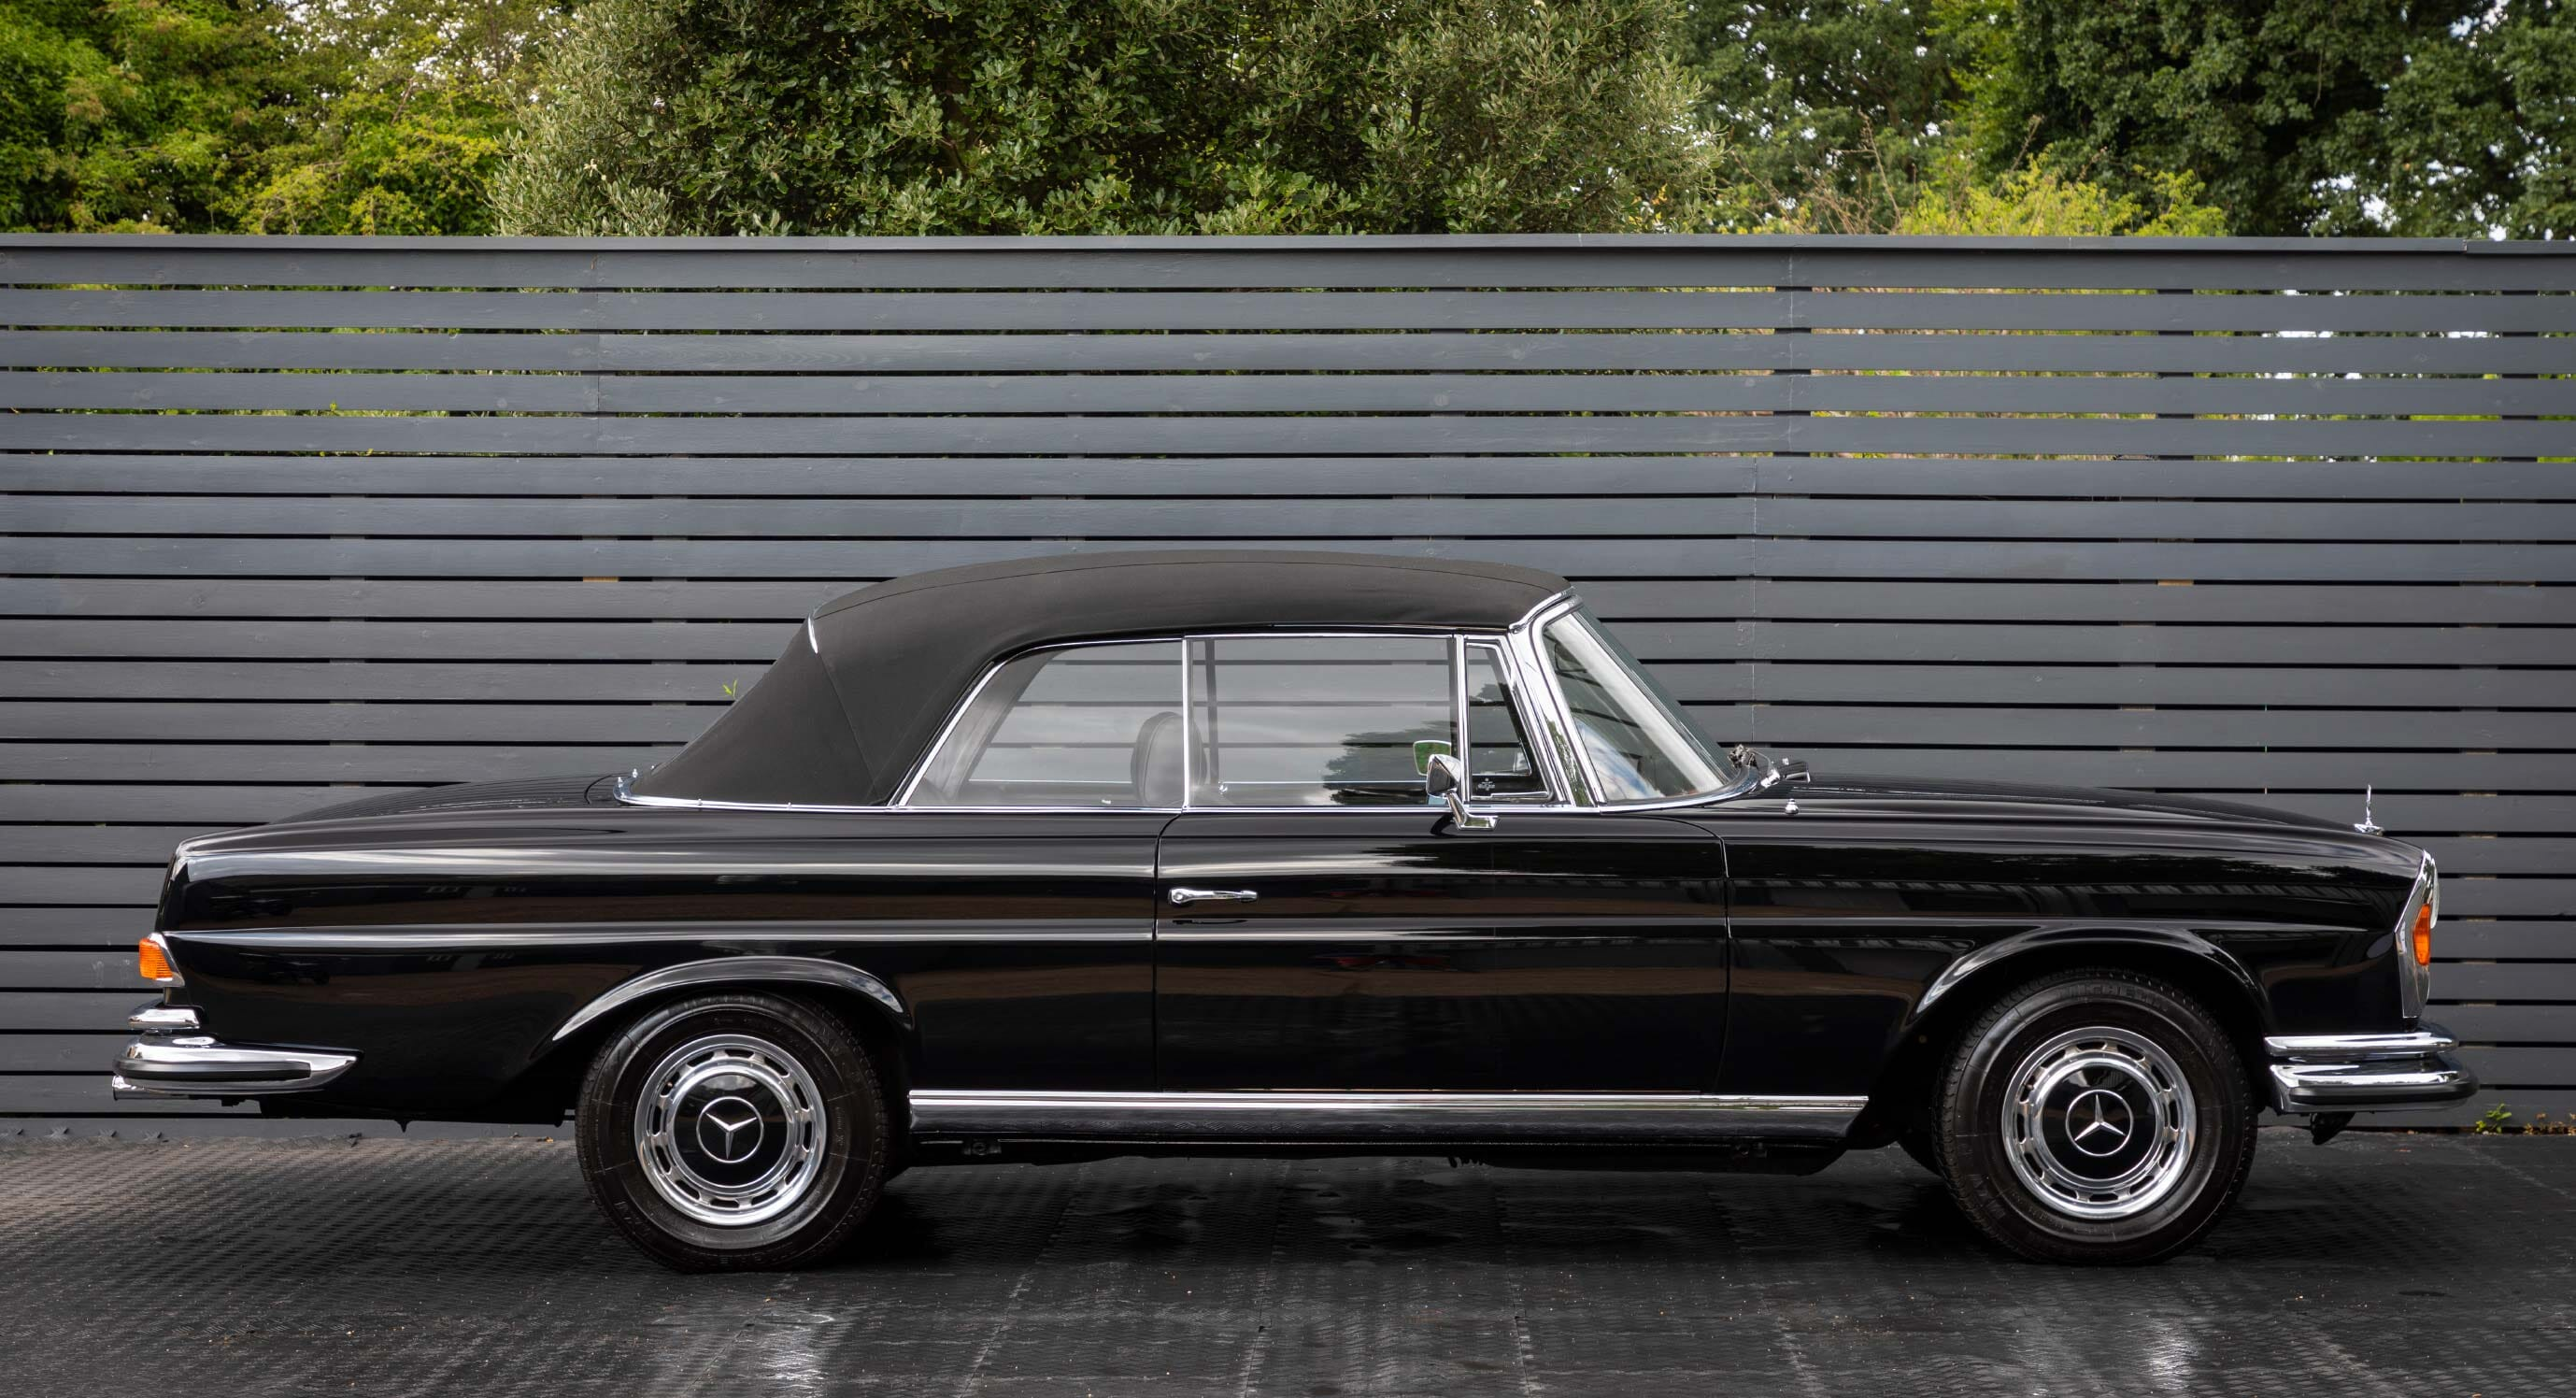 Classic Car Find of the Week: 1970 Mercedes Benz 280 SE